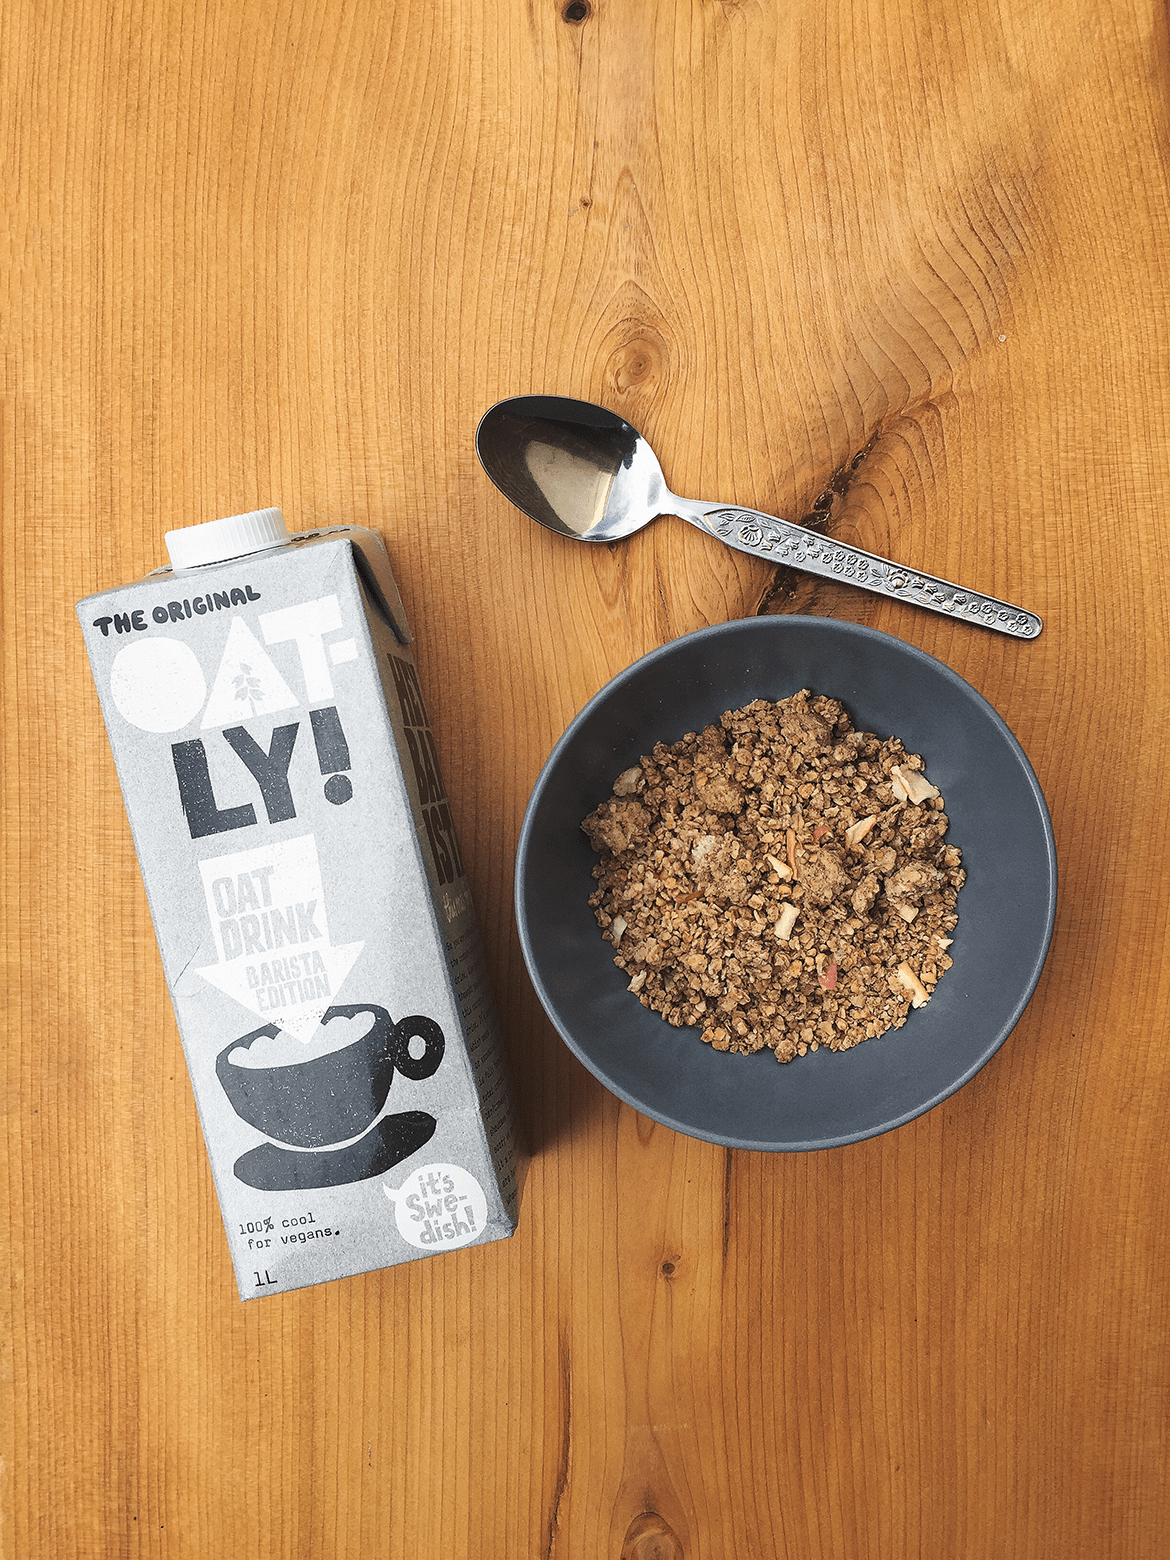 the best dairy free milk - oatly barista edition